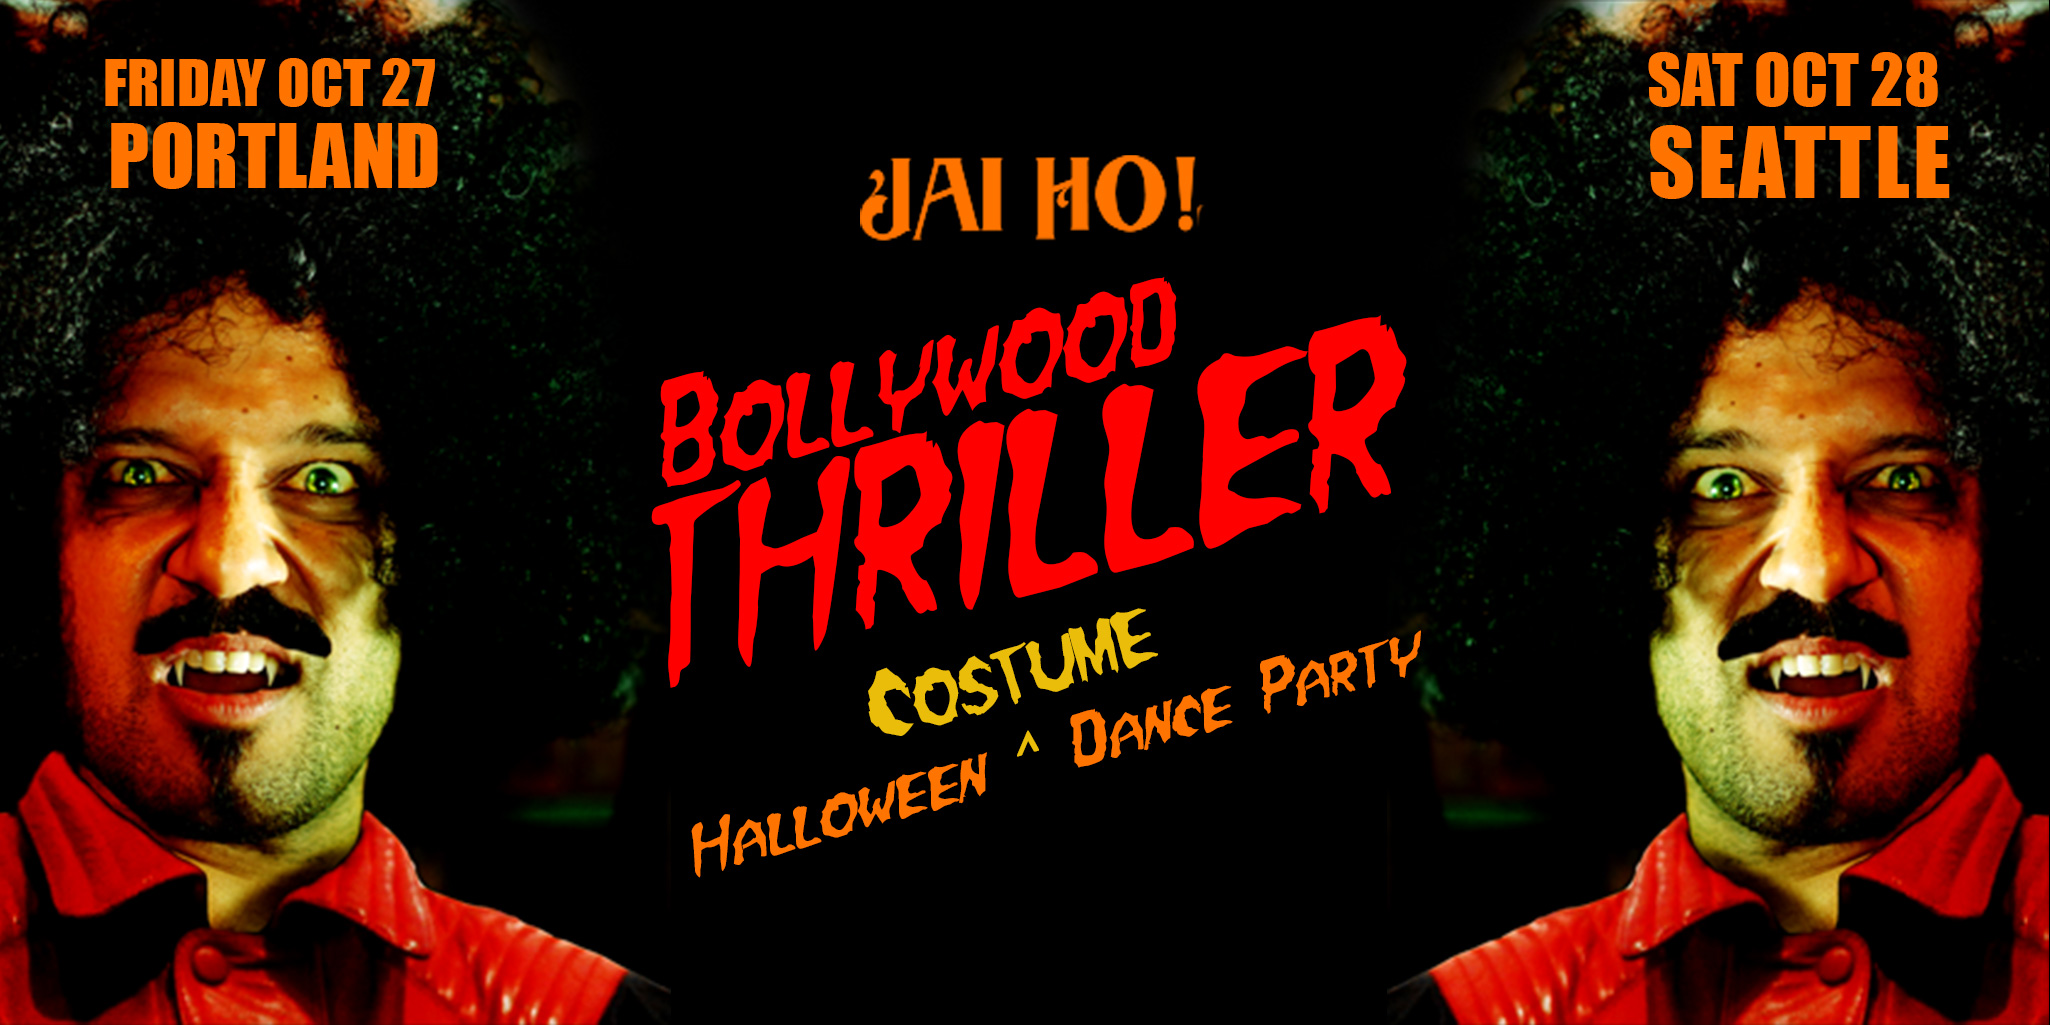 Halloween Costume Dance Party in Seattle THE BOLLYWOOD THRILLER